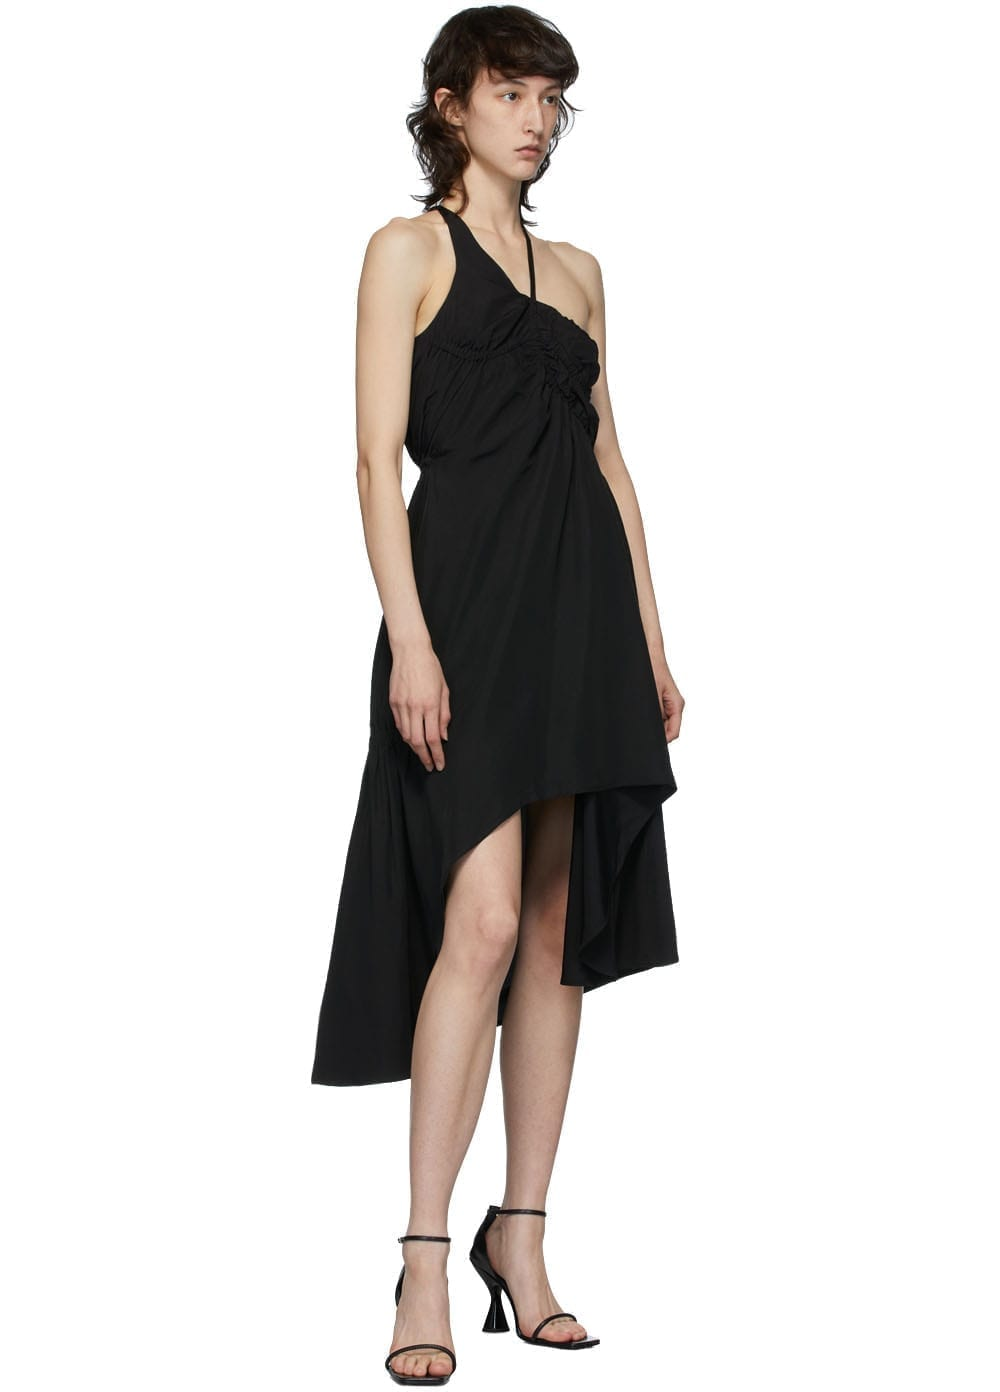 VEJAS Black Elasticated Liquid Slip Dress